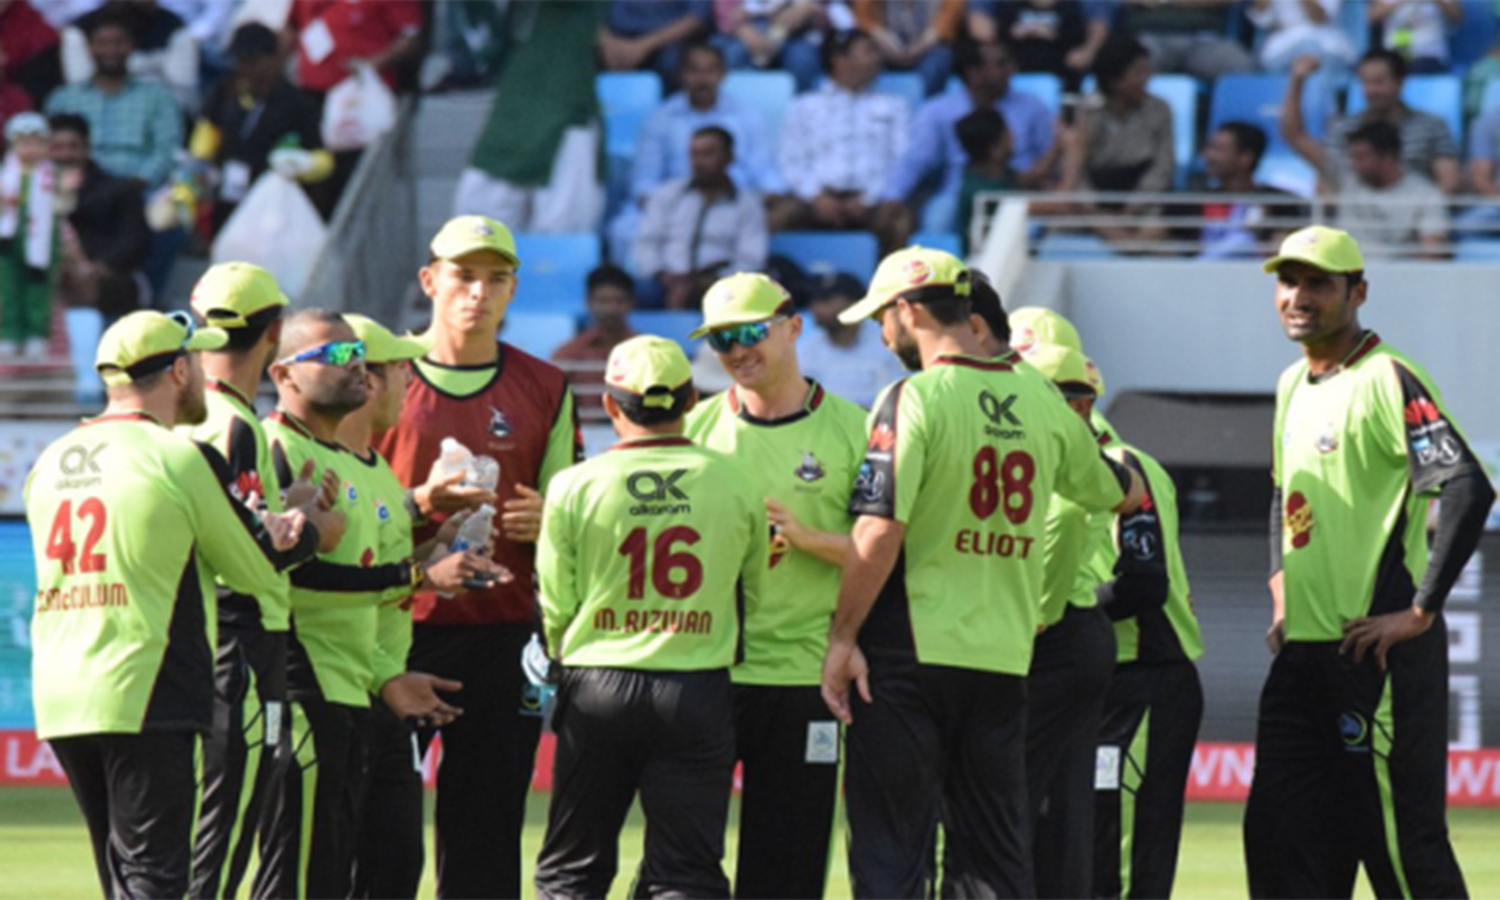 Lahore's premier cricket league team, the Lahore Qalandars. The total worth of the team is $25 million. (Pic: Pakistan Tribe)